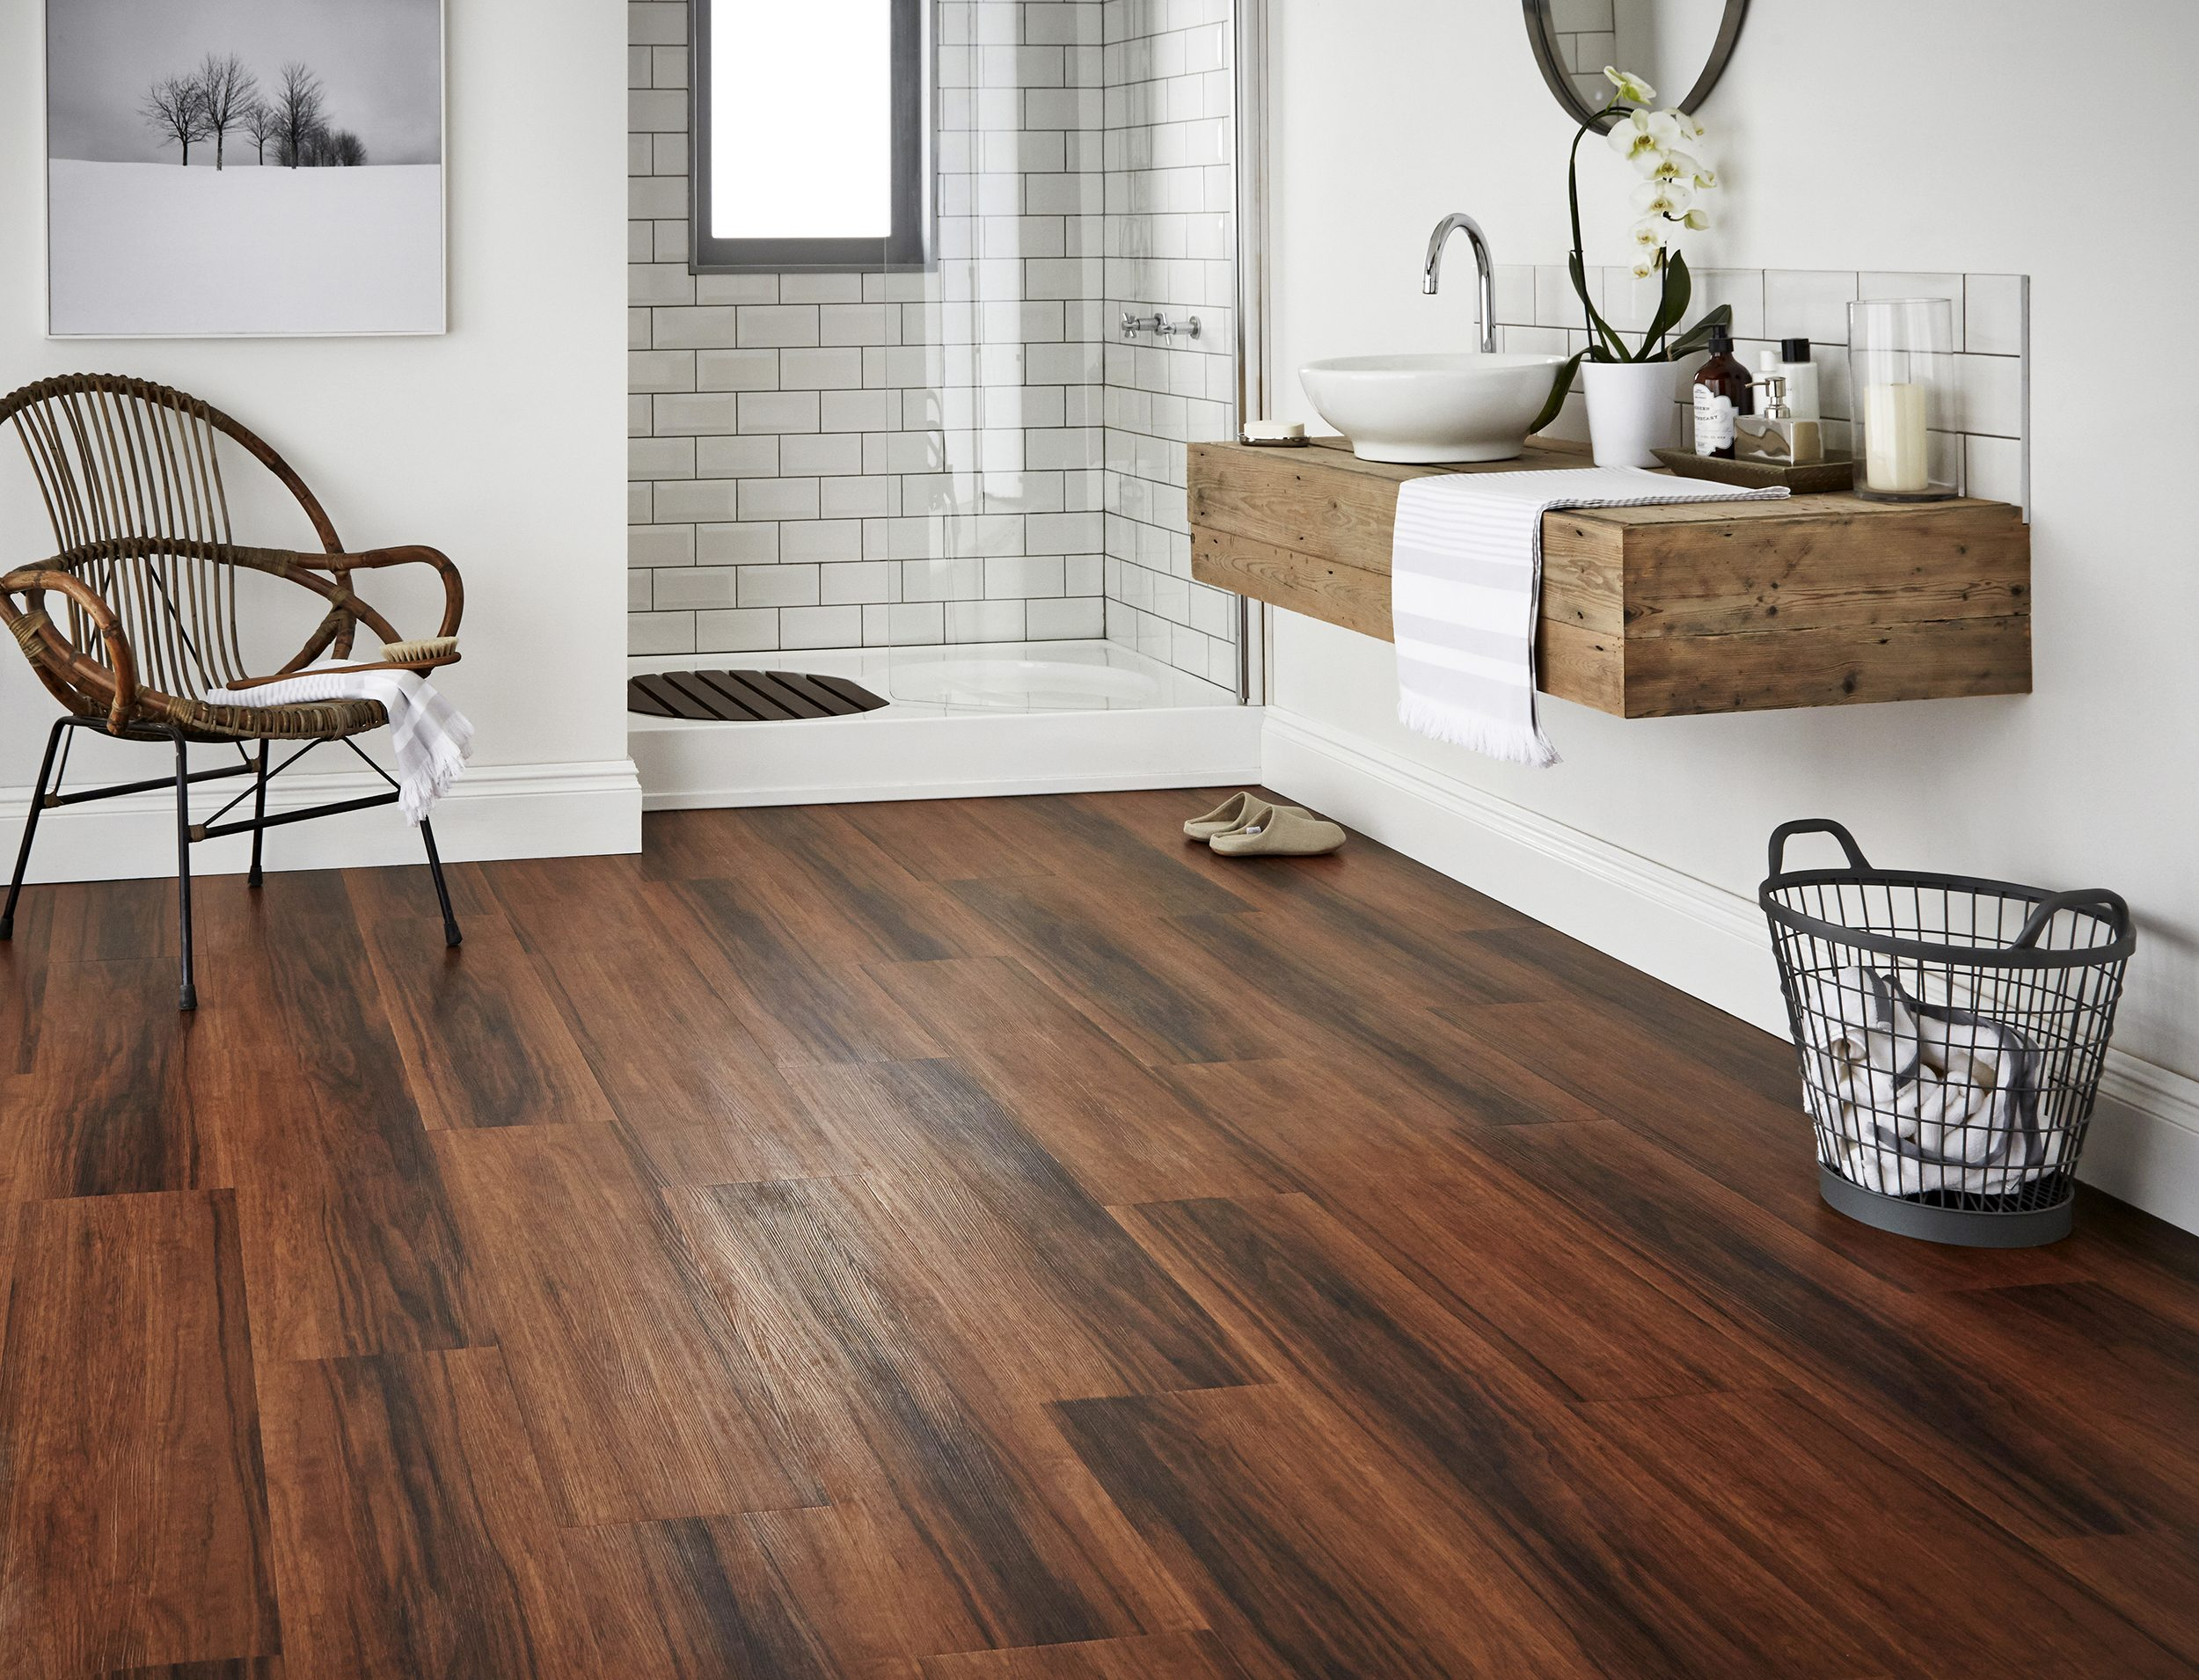 How to Choose the Best Quality Loose Lay Vinyl Planks?